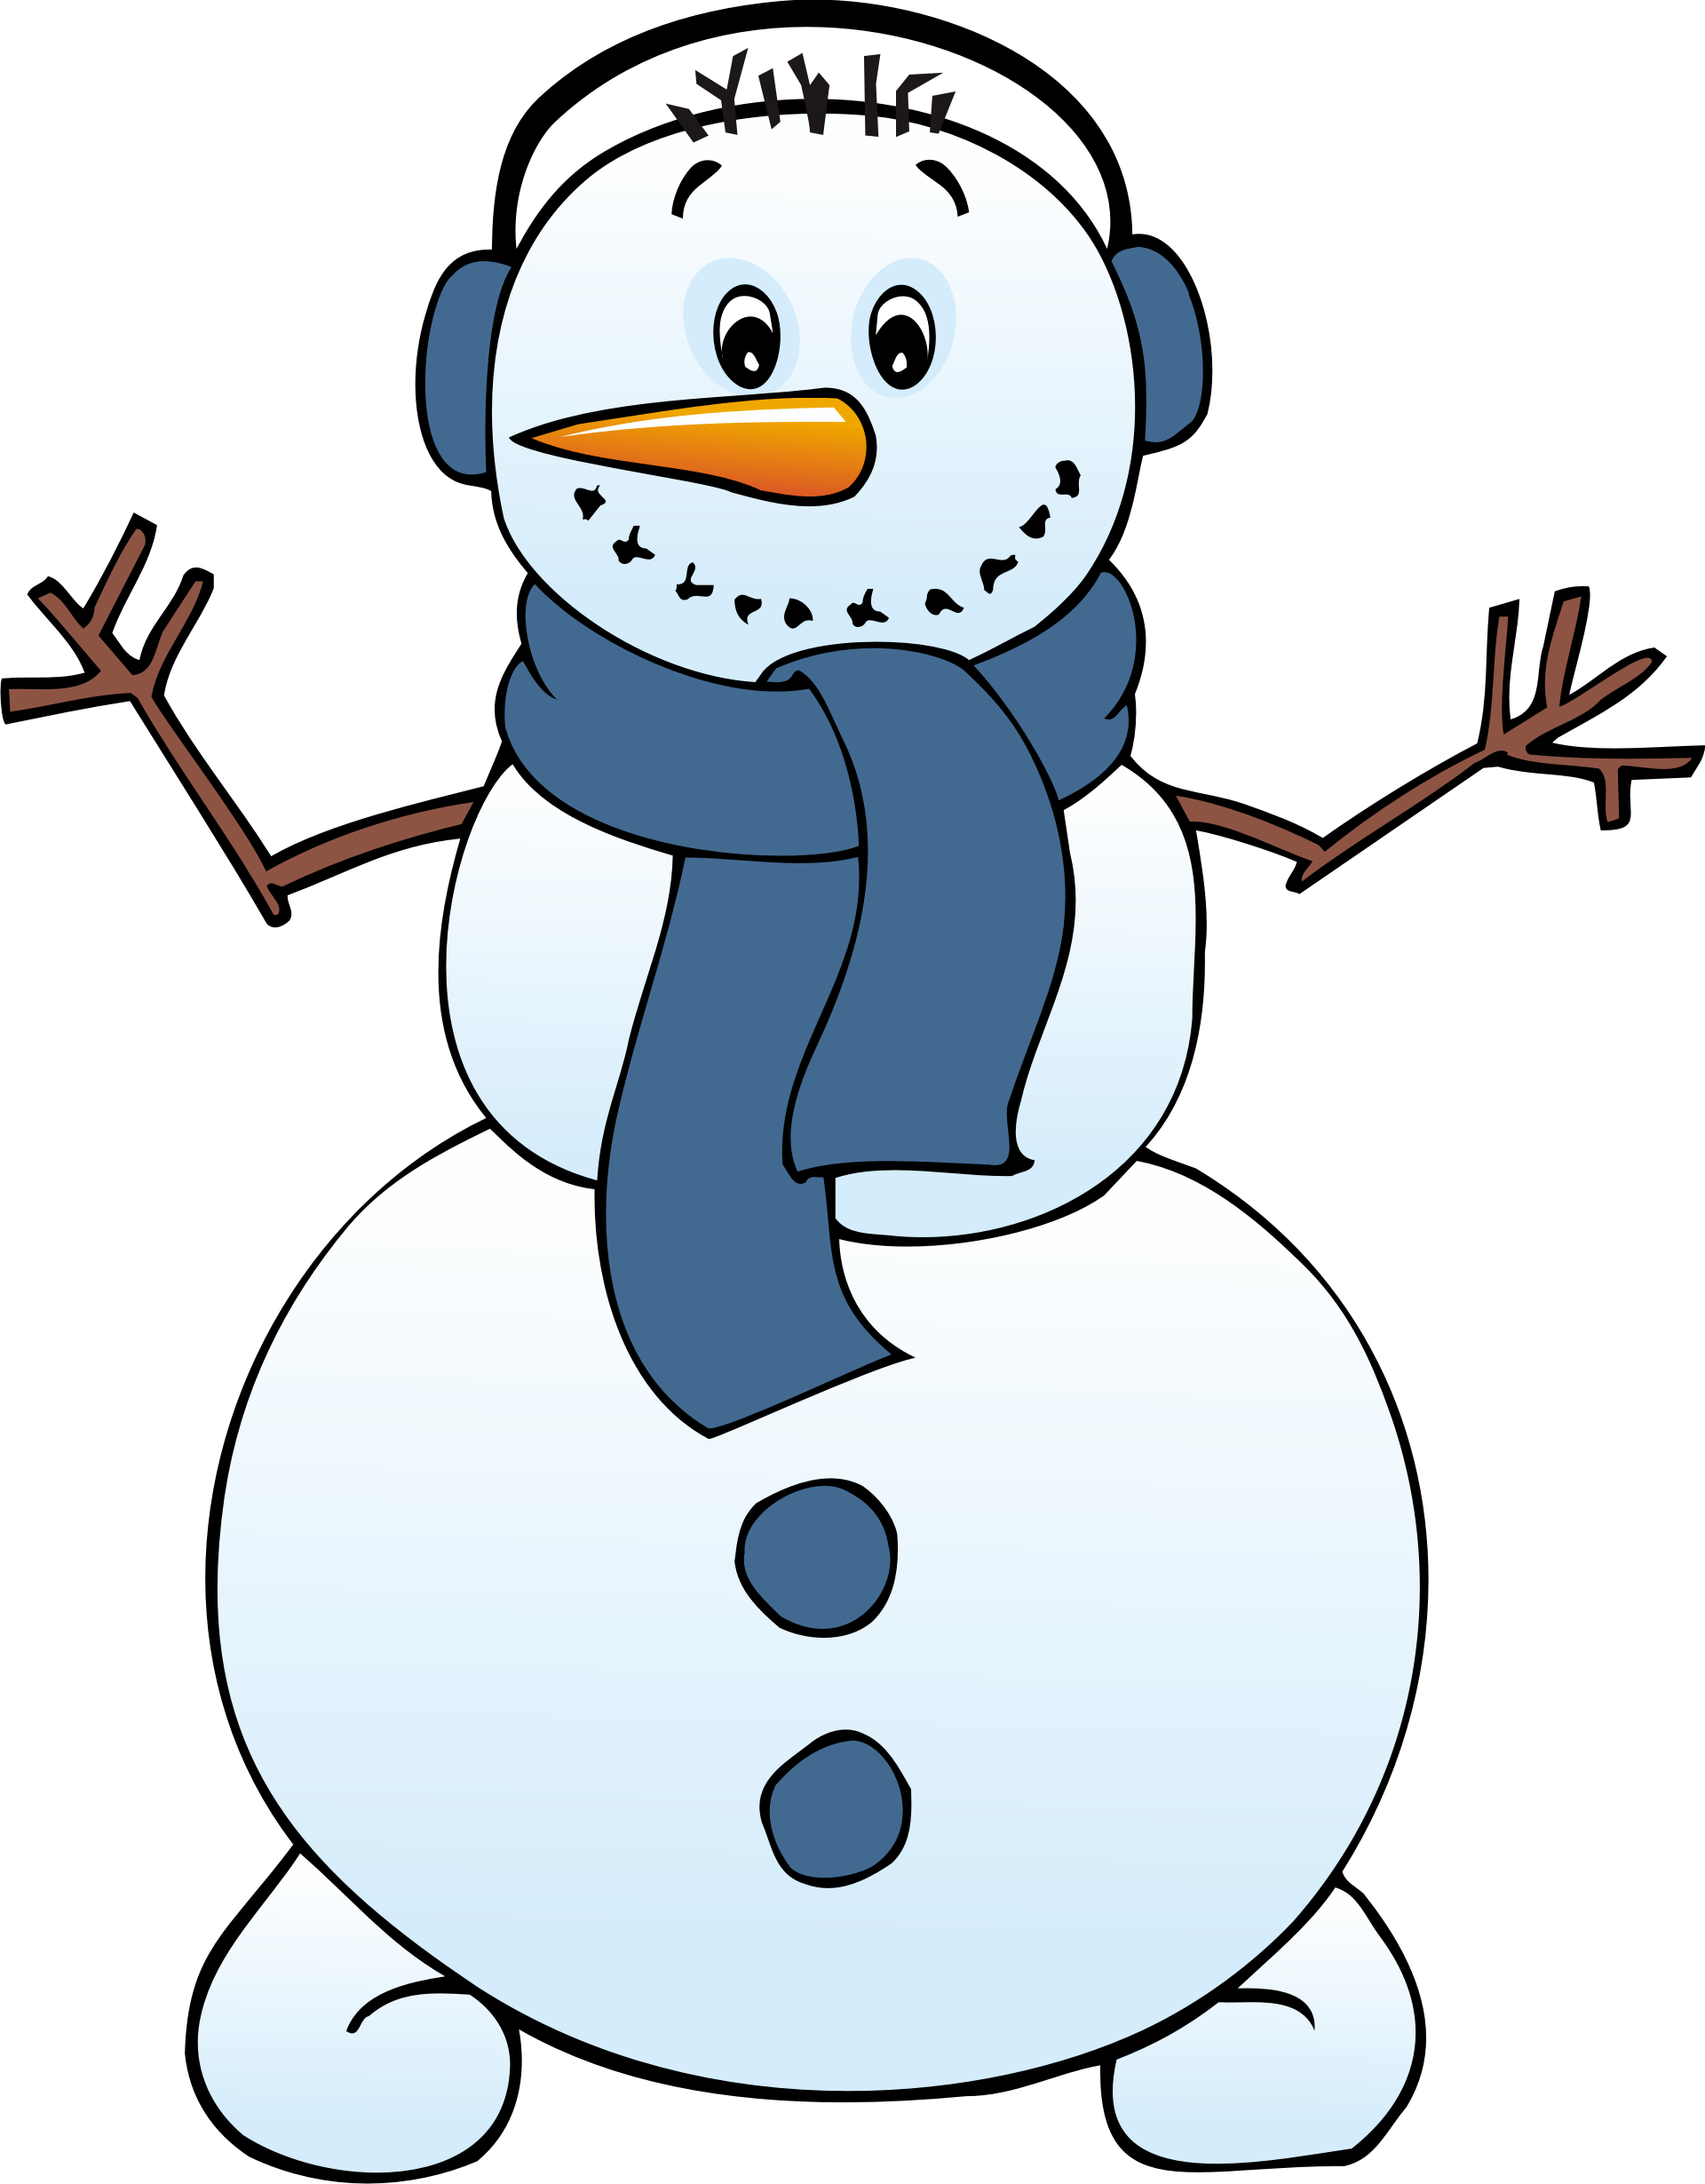 cute snowman clip art free snowman clipart free cliparts that rh pinterest com free snowman clipart images free clipart snowman throwing snowballs